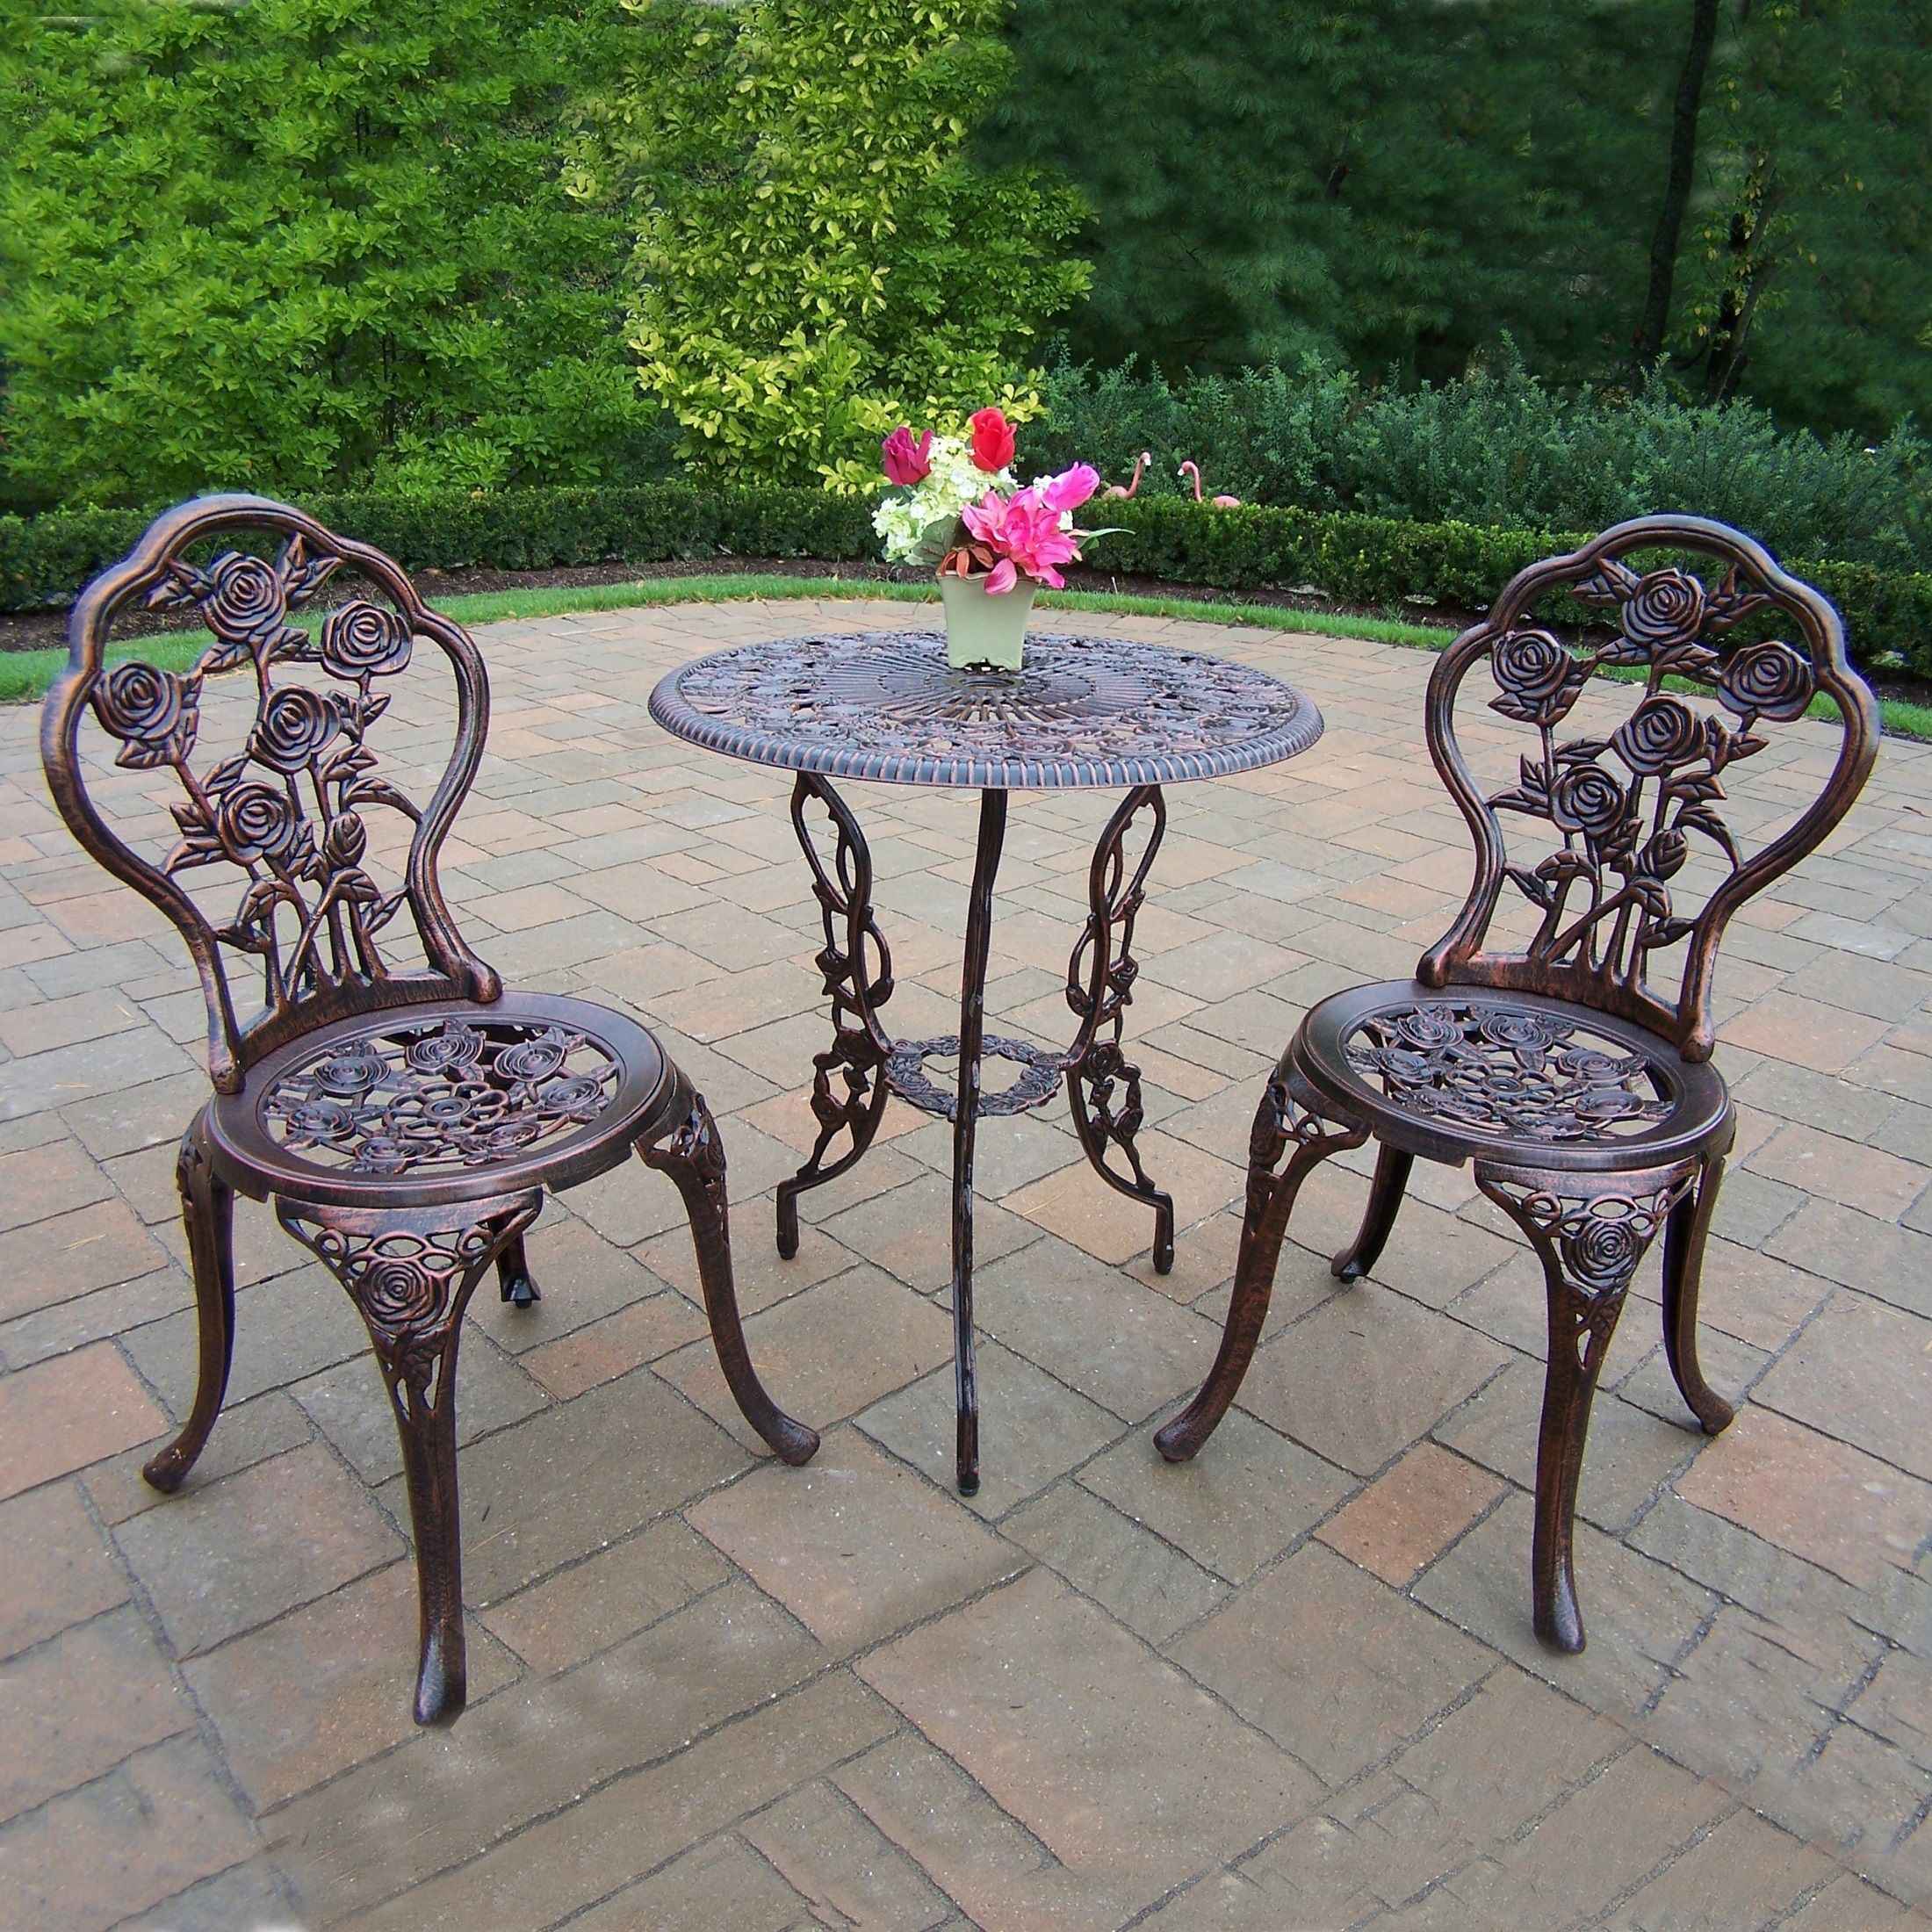 Camellia cast aluminum 3piece bistro set with table and 2